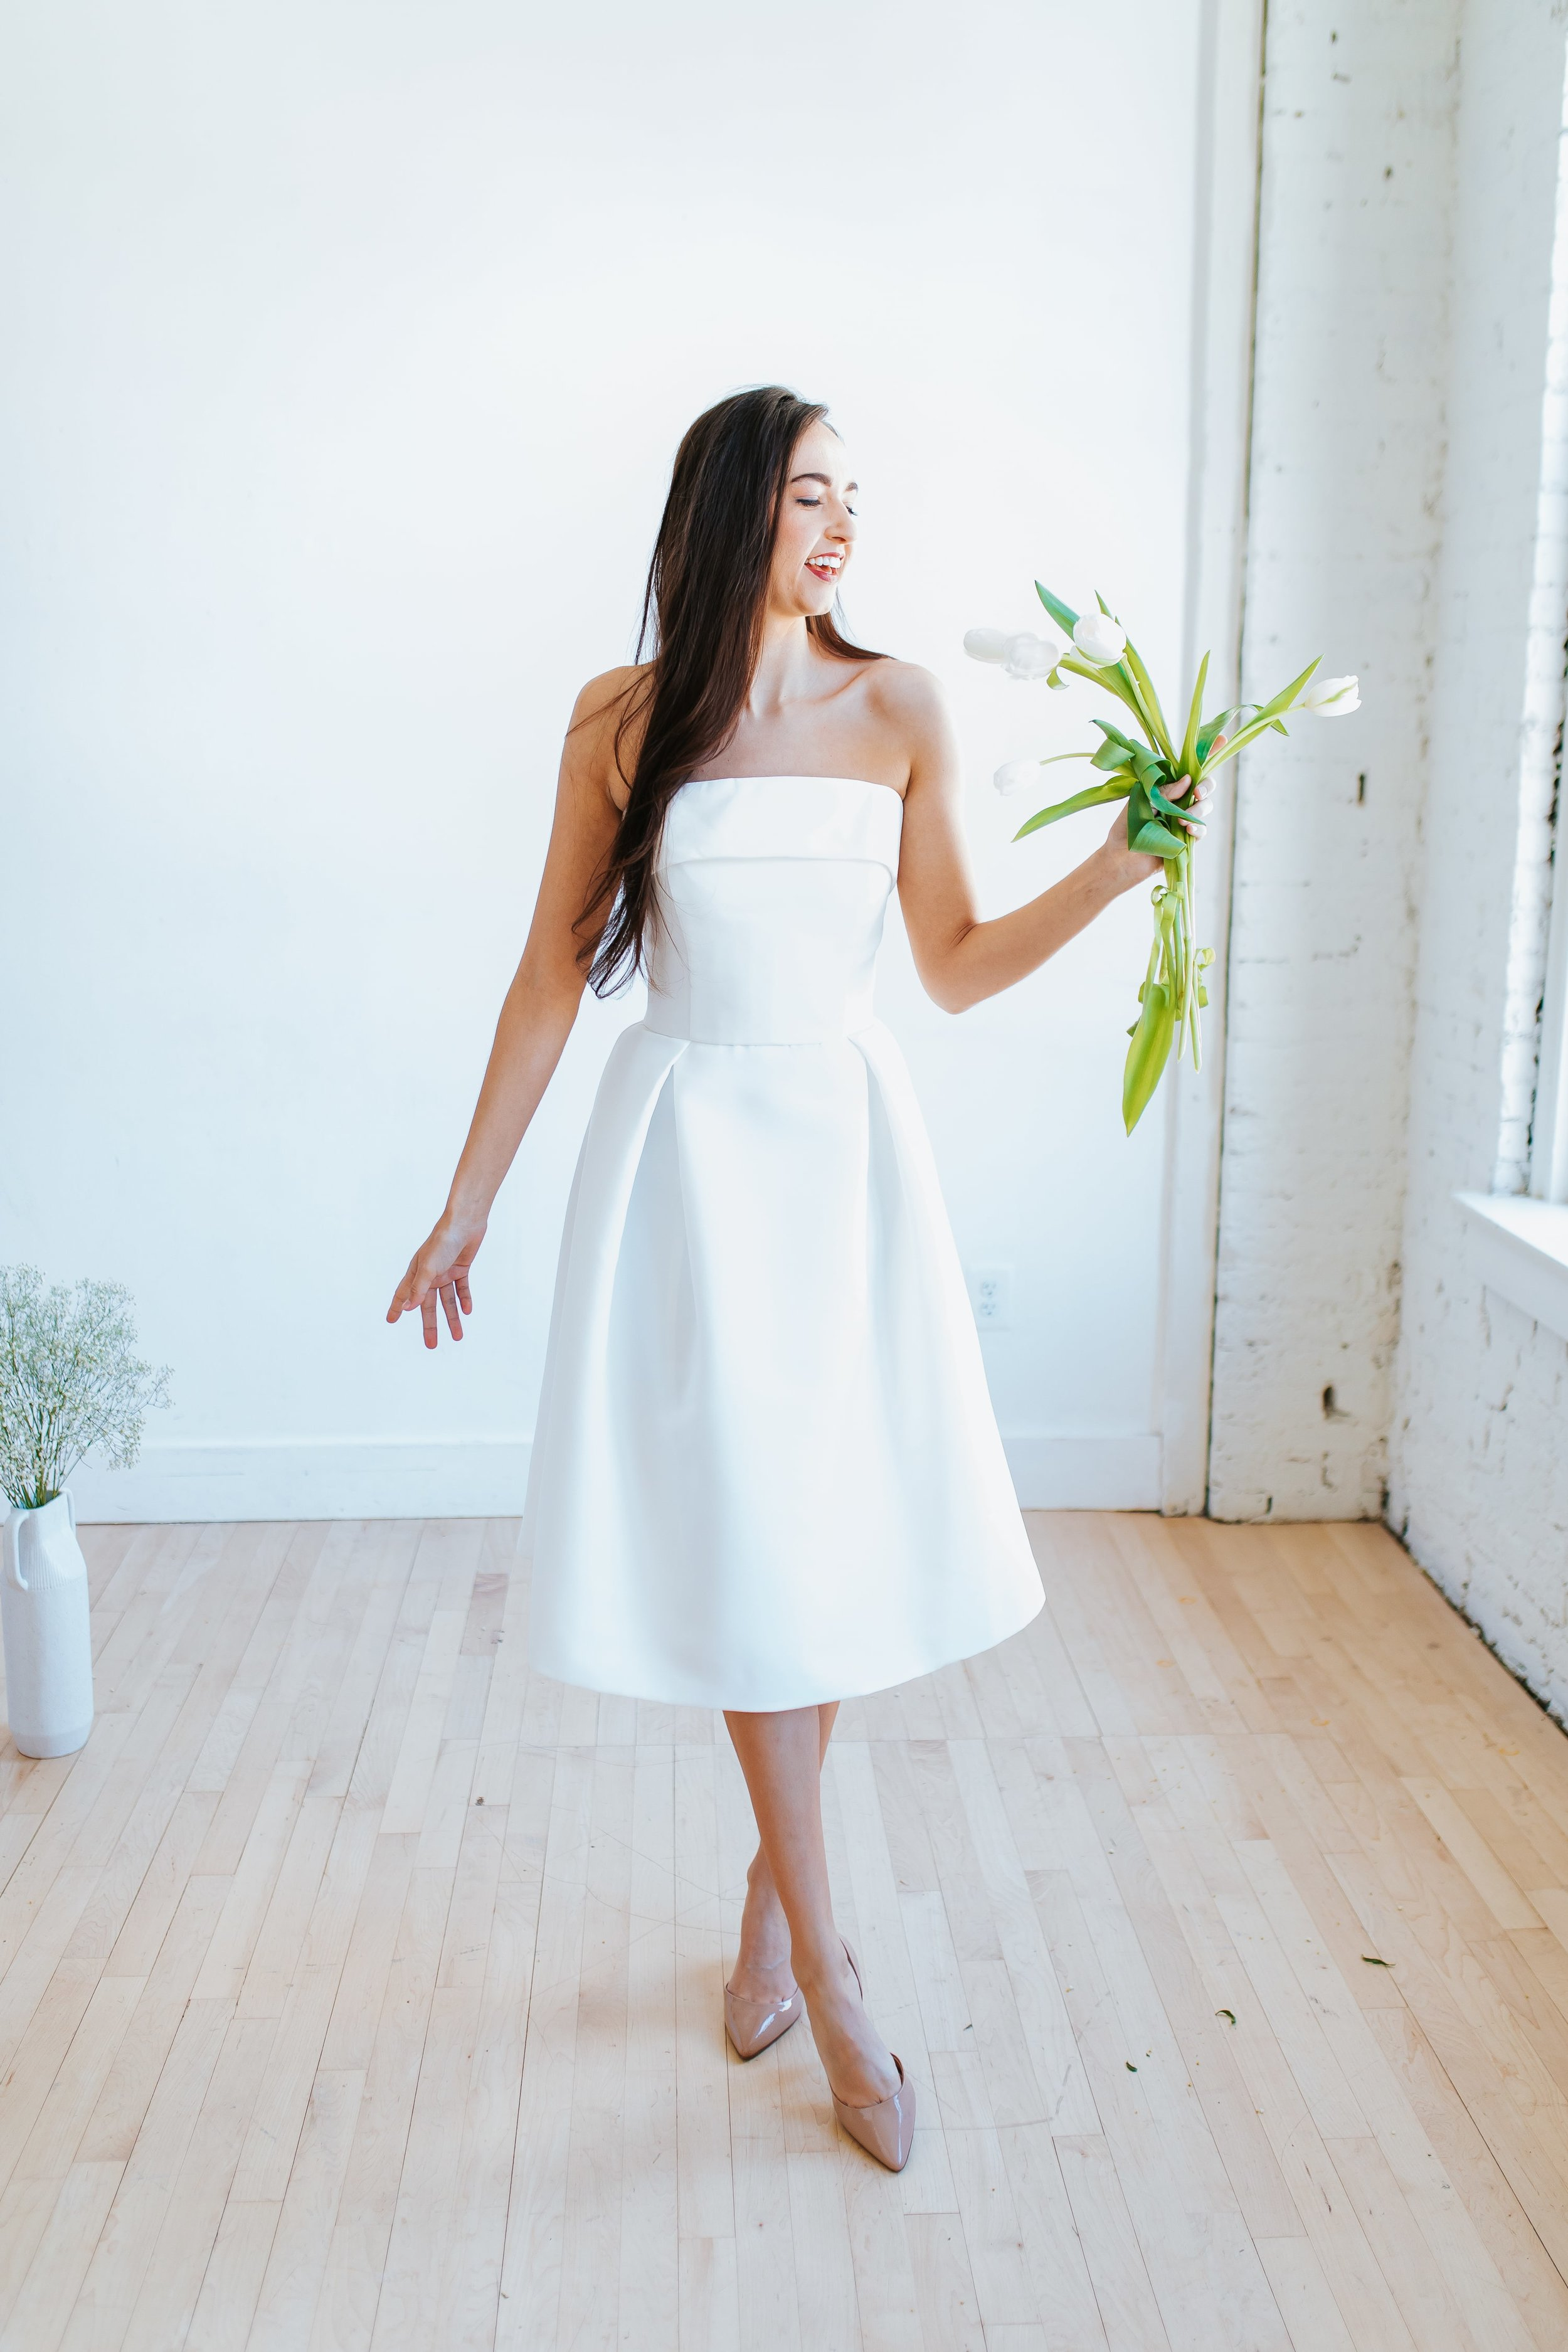 Styled shoot in Columbus Ohio featuring LW140 by Amsale Little White Dresses